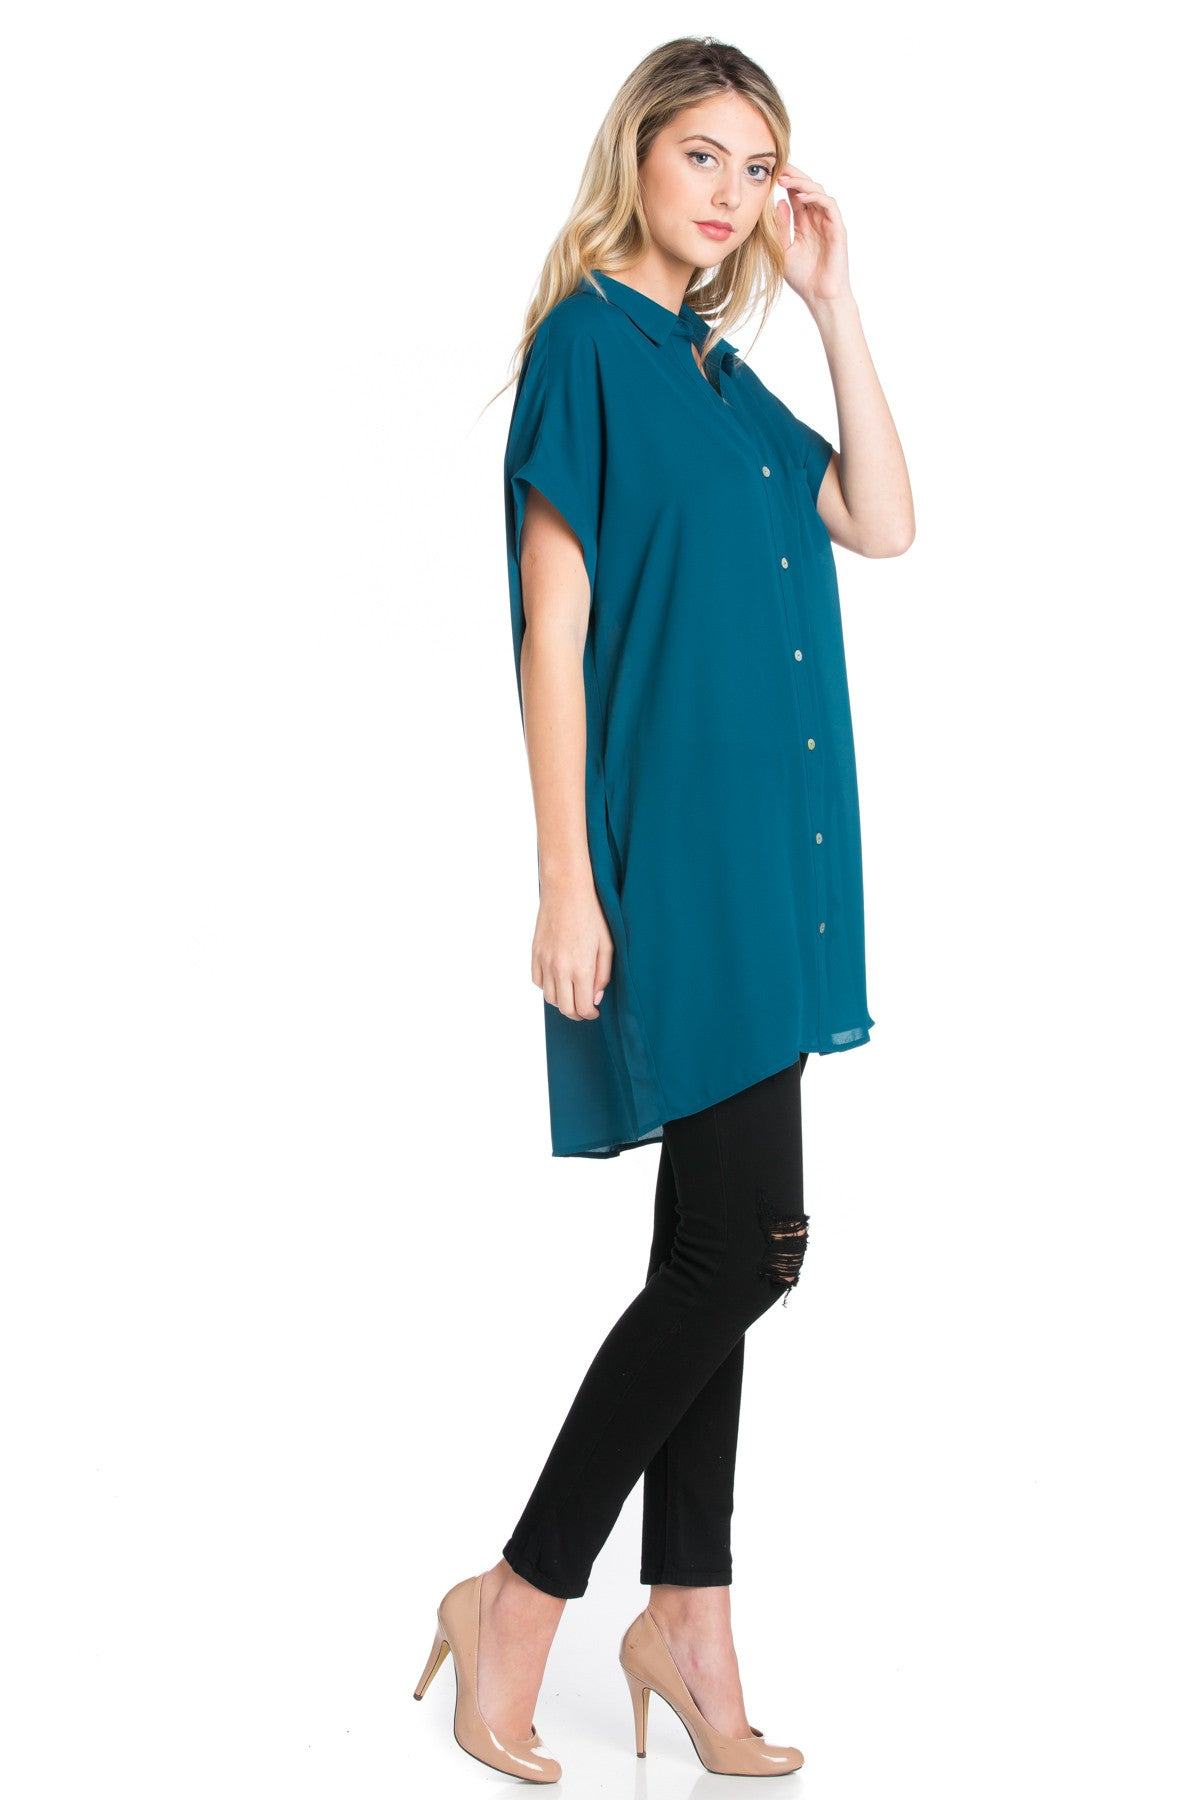 Short Sleeve Longline Button Down Chiffon Top in Teal - Tops - My Yuccie - 14